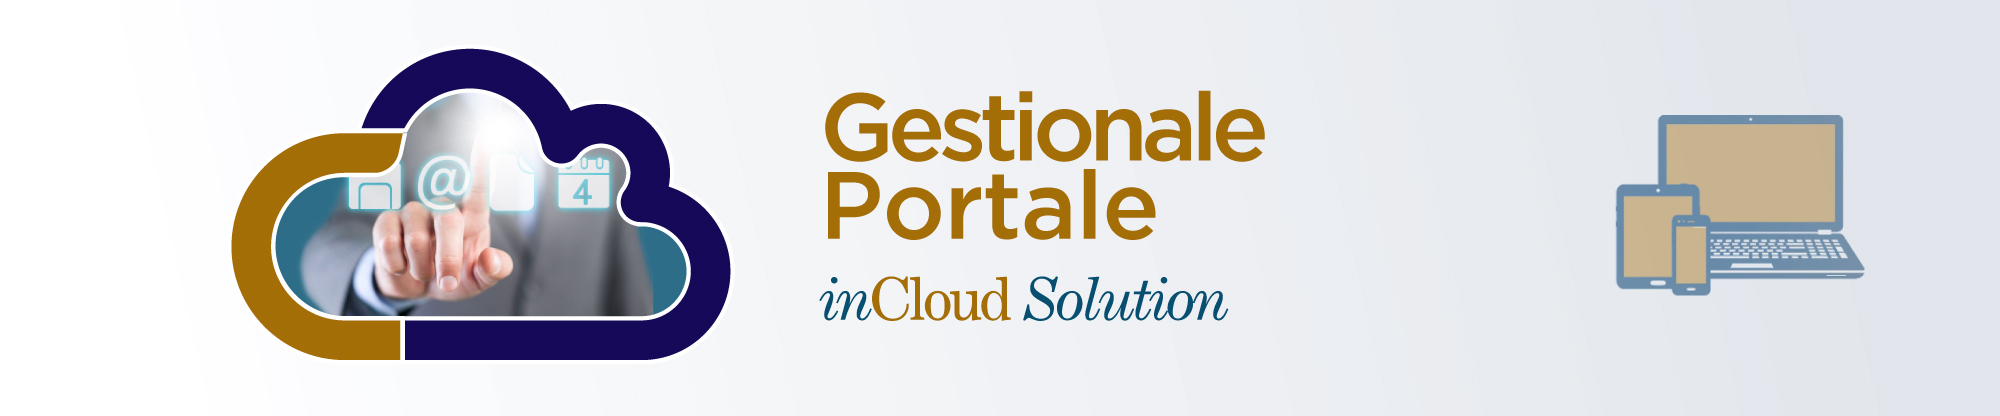 Elea-software-applicativo-gestionale-in-cloud-solution-gestionali-aziendali-smart-woorking-plus-prodotto-cloud-applicativo-software2021-GESTIONALE-PORTALE